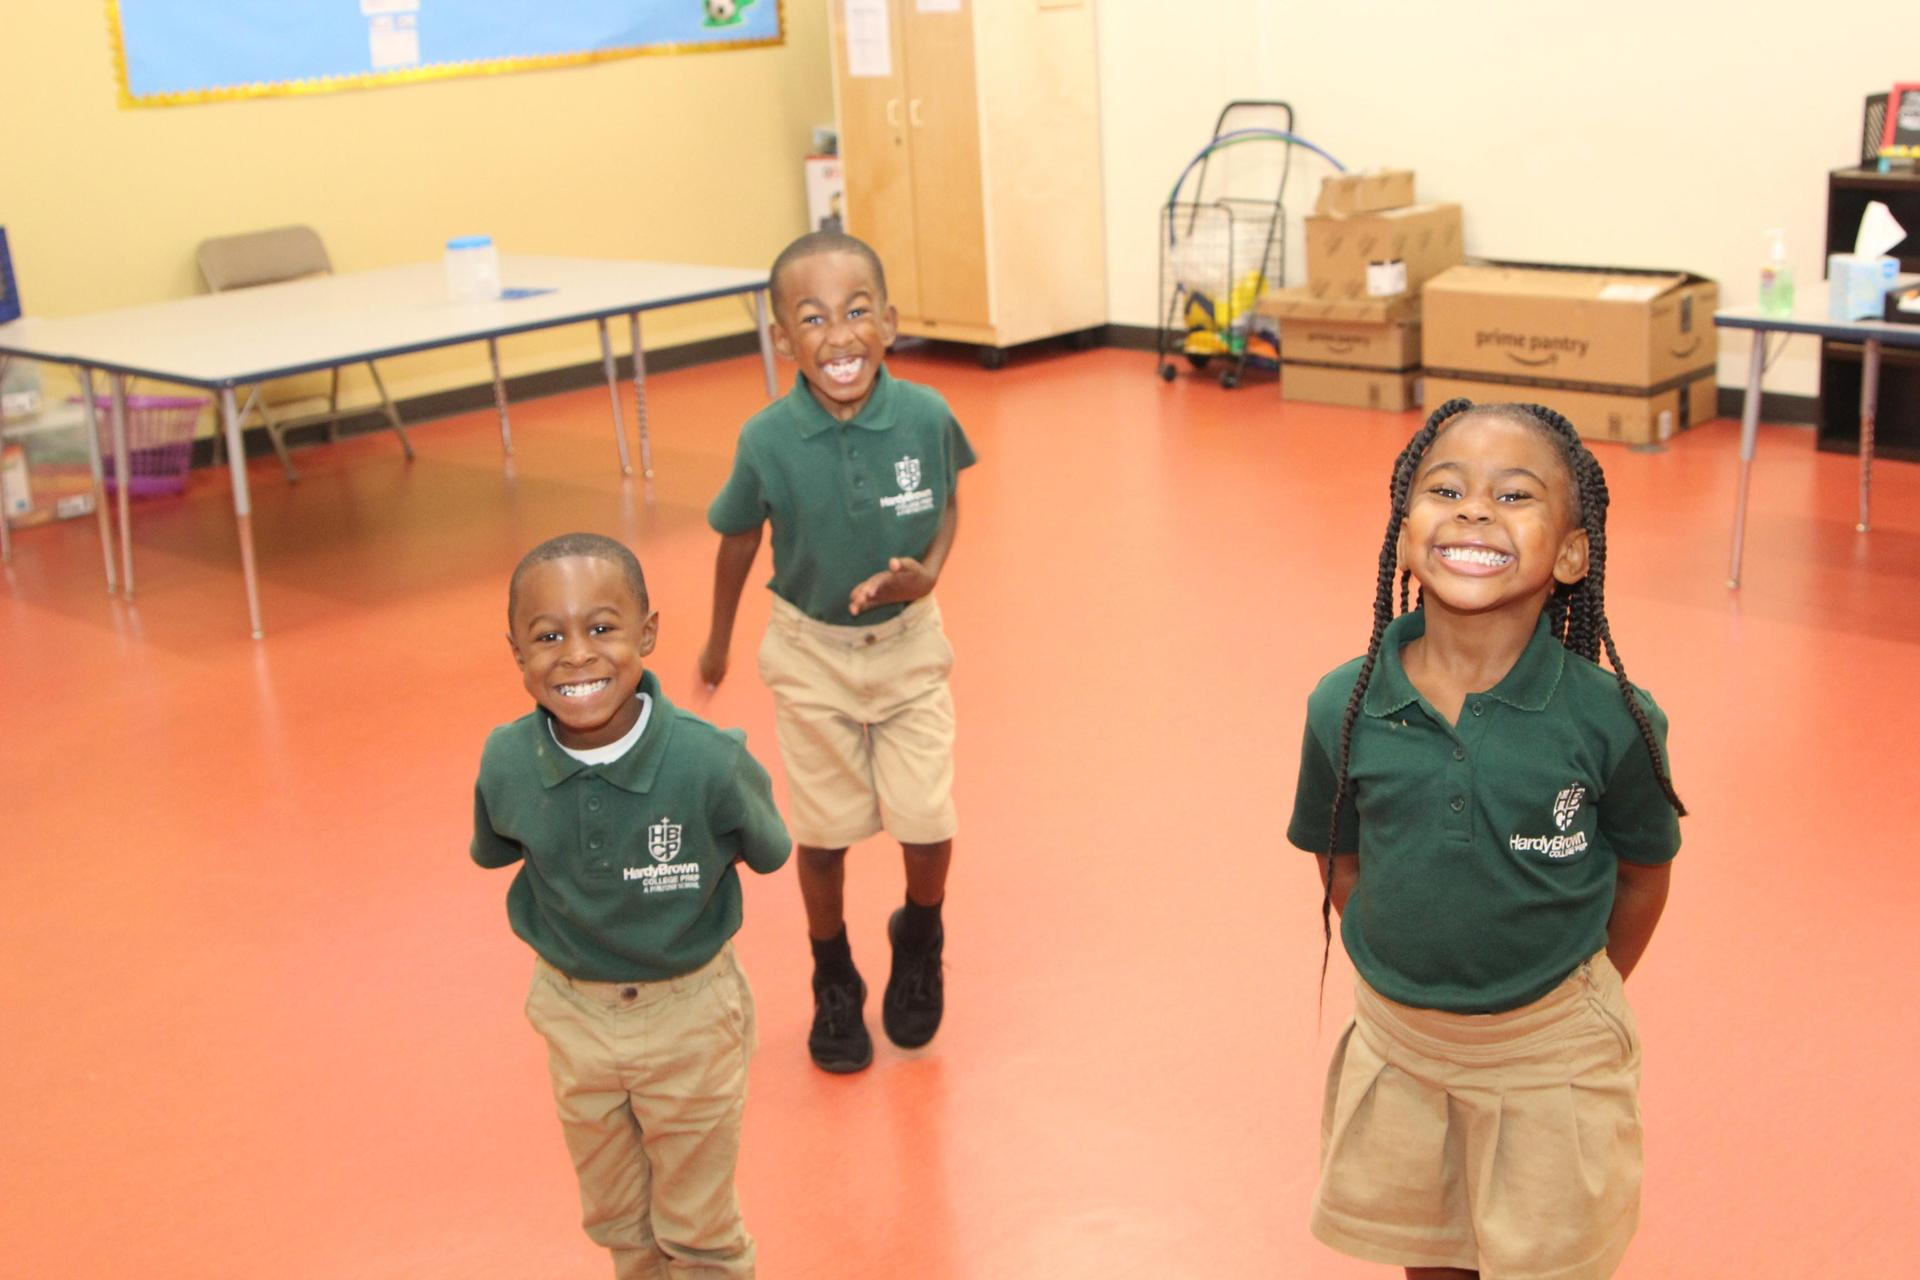 Kindergartners during after-school program